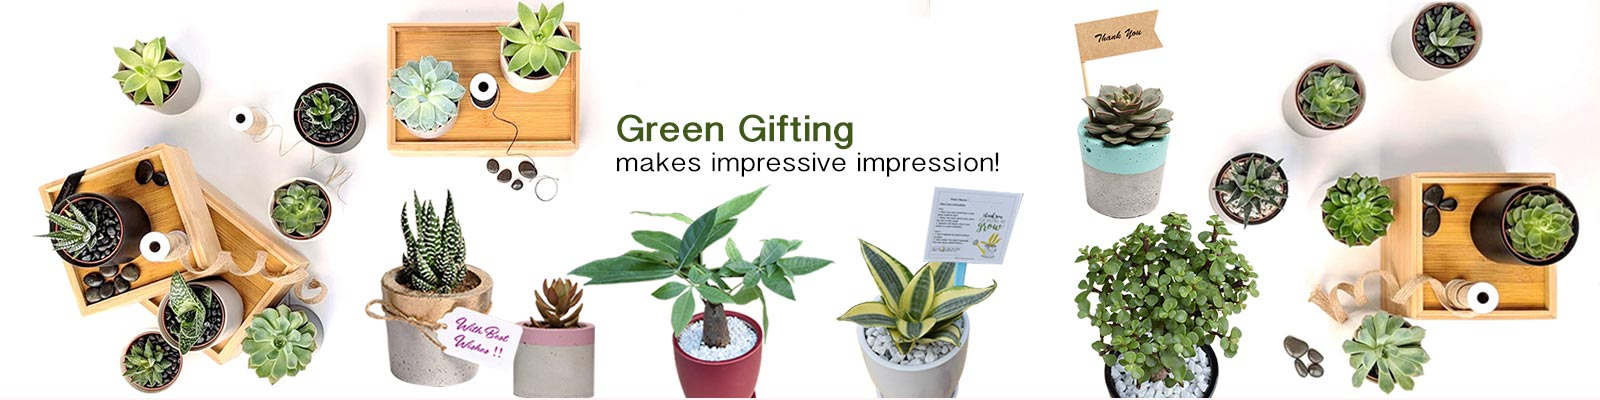 Corporate Green Gifting - Corporate Air Purifying Gift Plants Gurgaon, Noida, Delhi